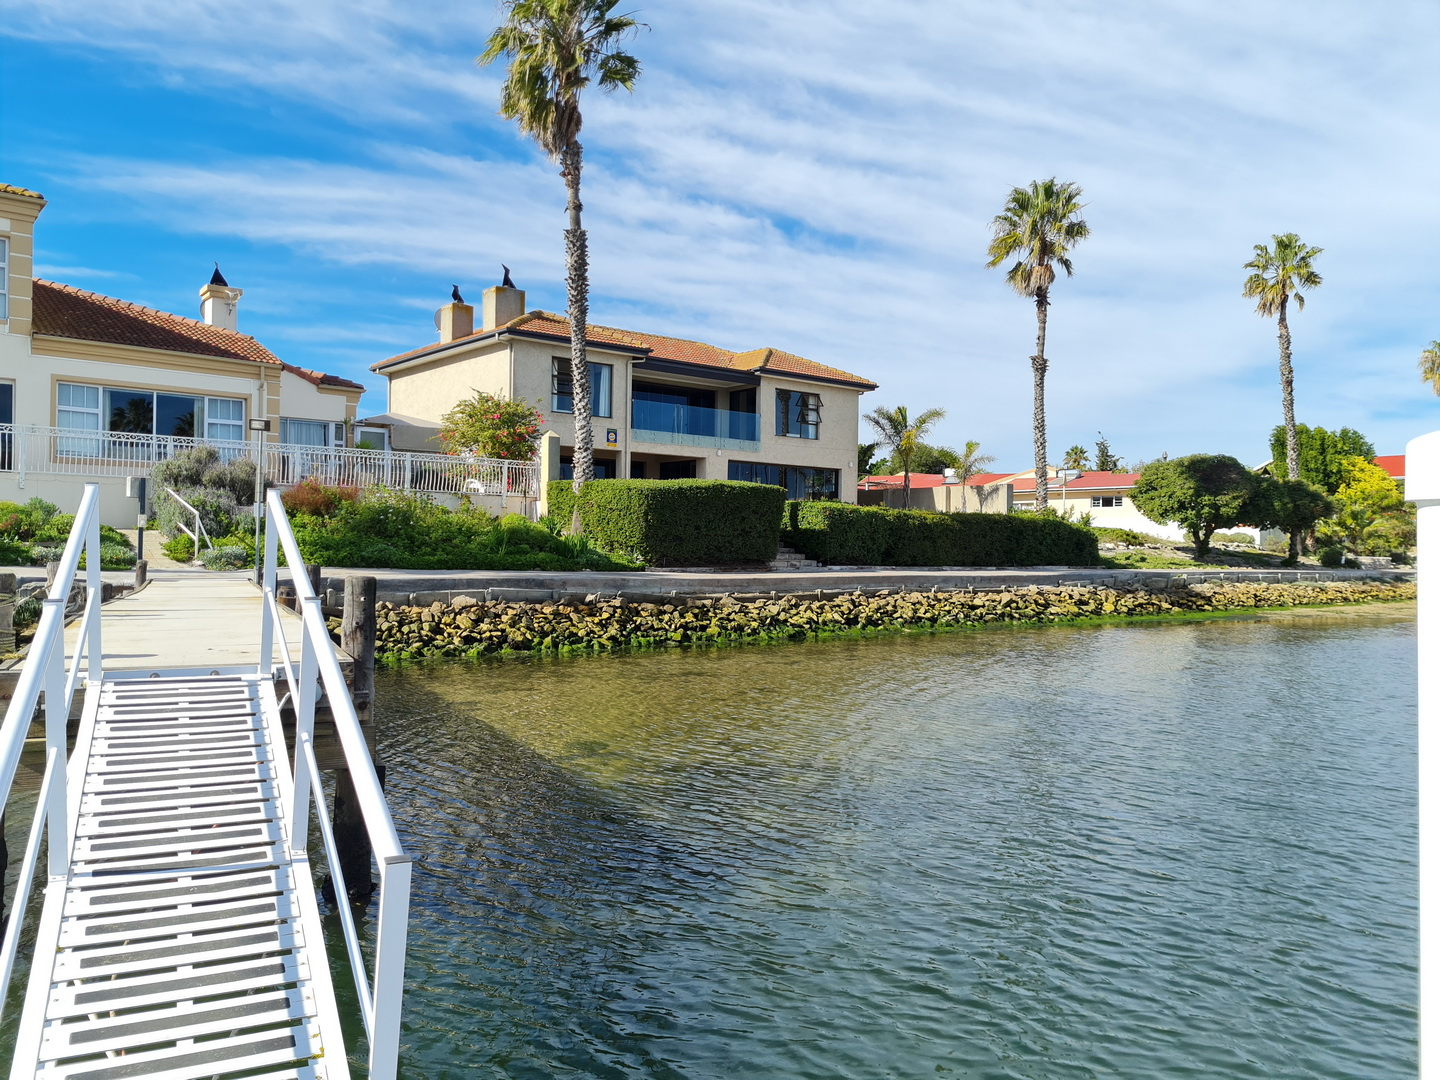 Huge House on Marina with Jetty for sale in Port Owen